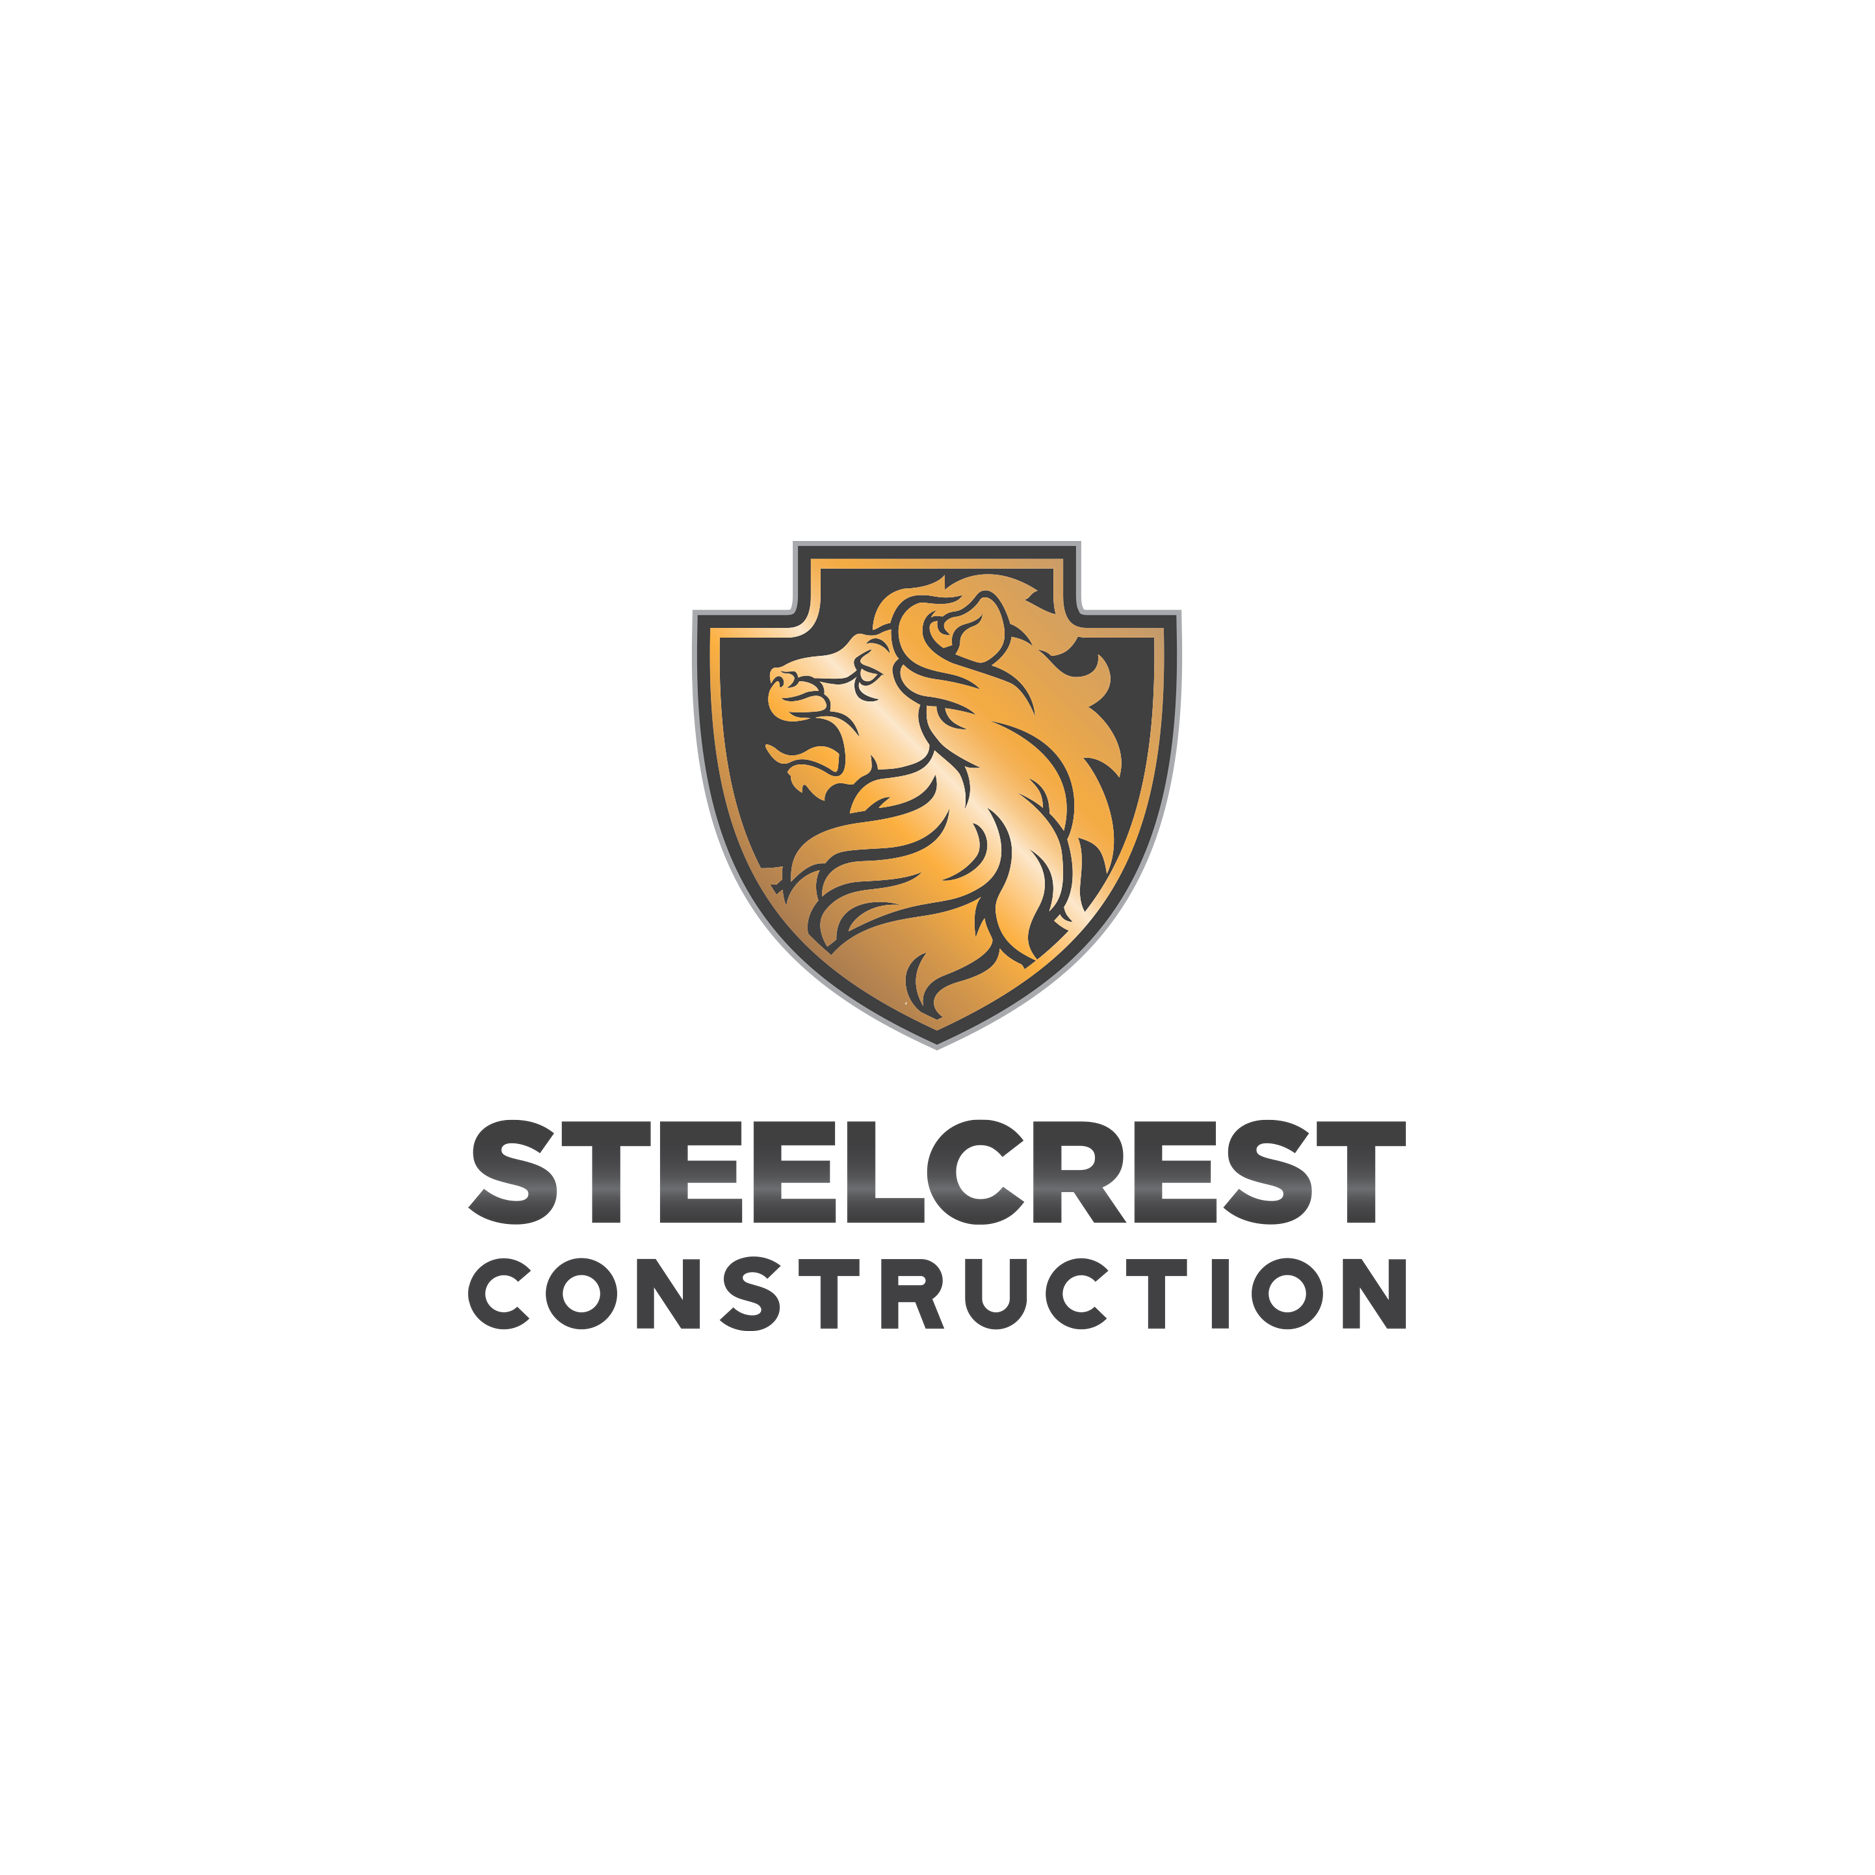 Steelcrest Construction